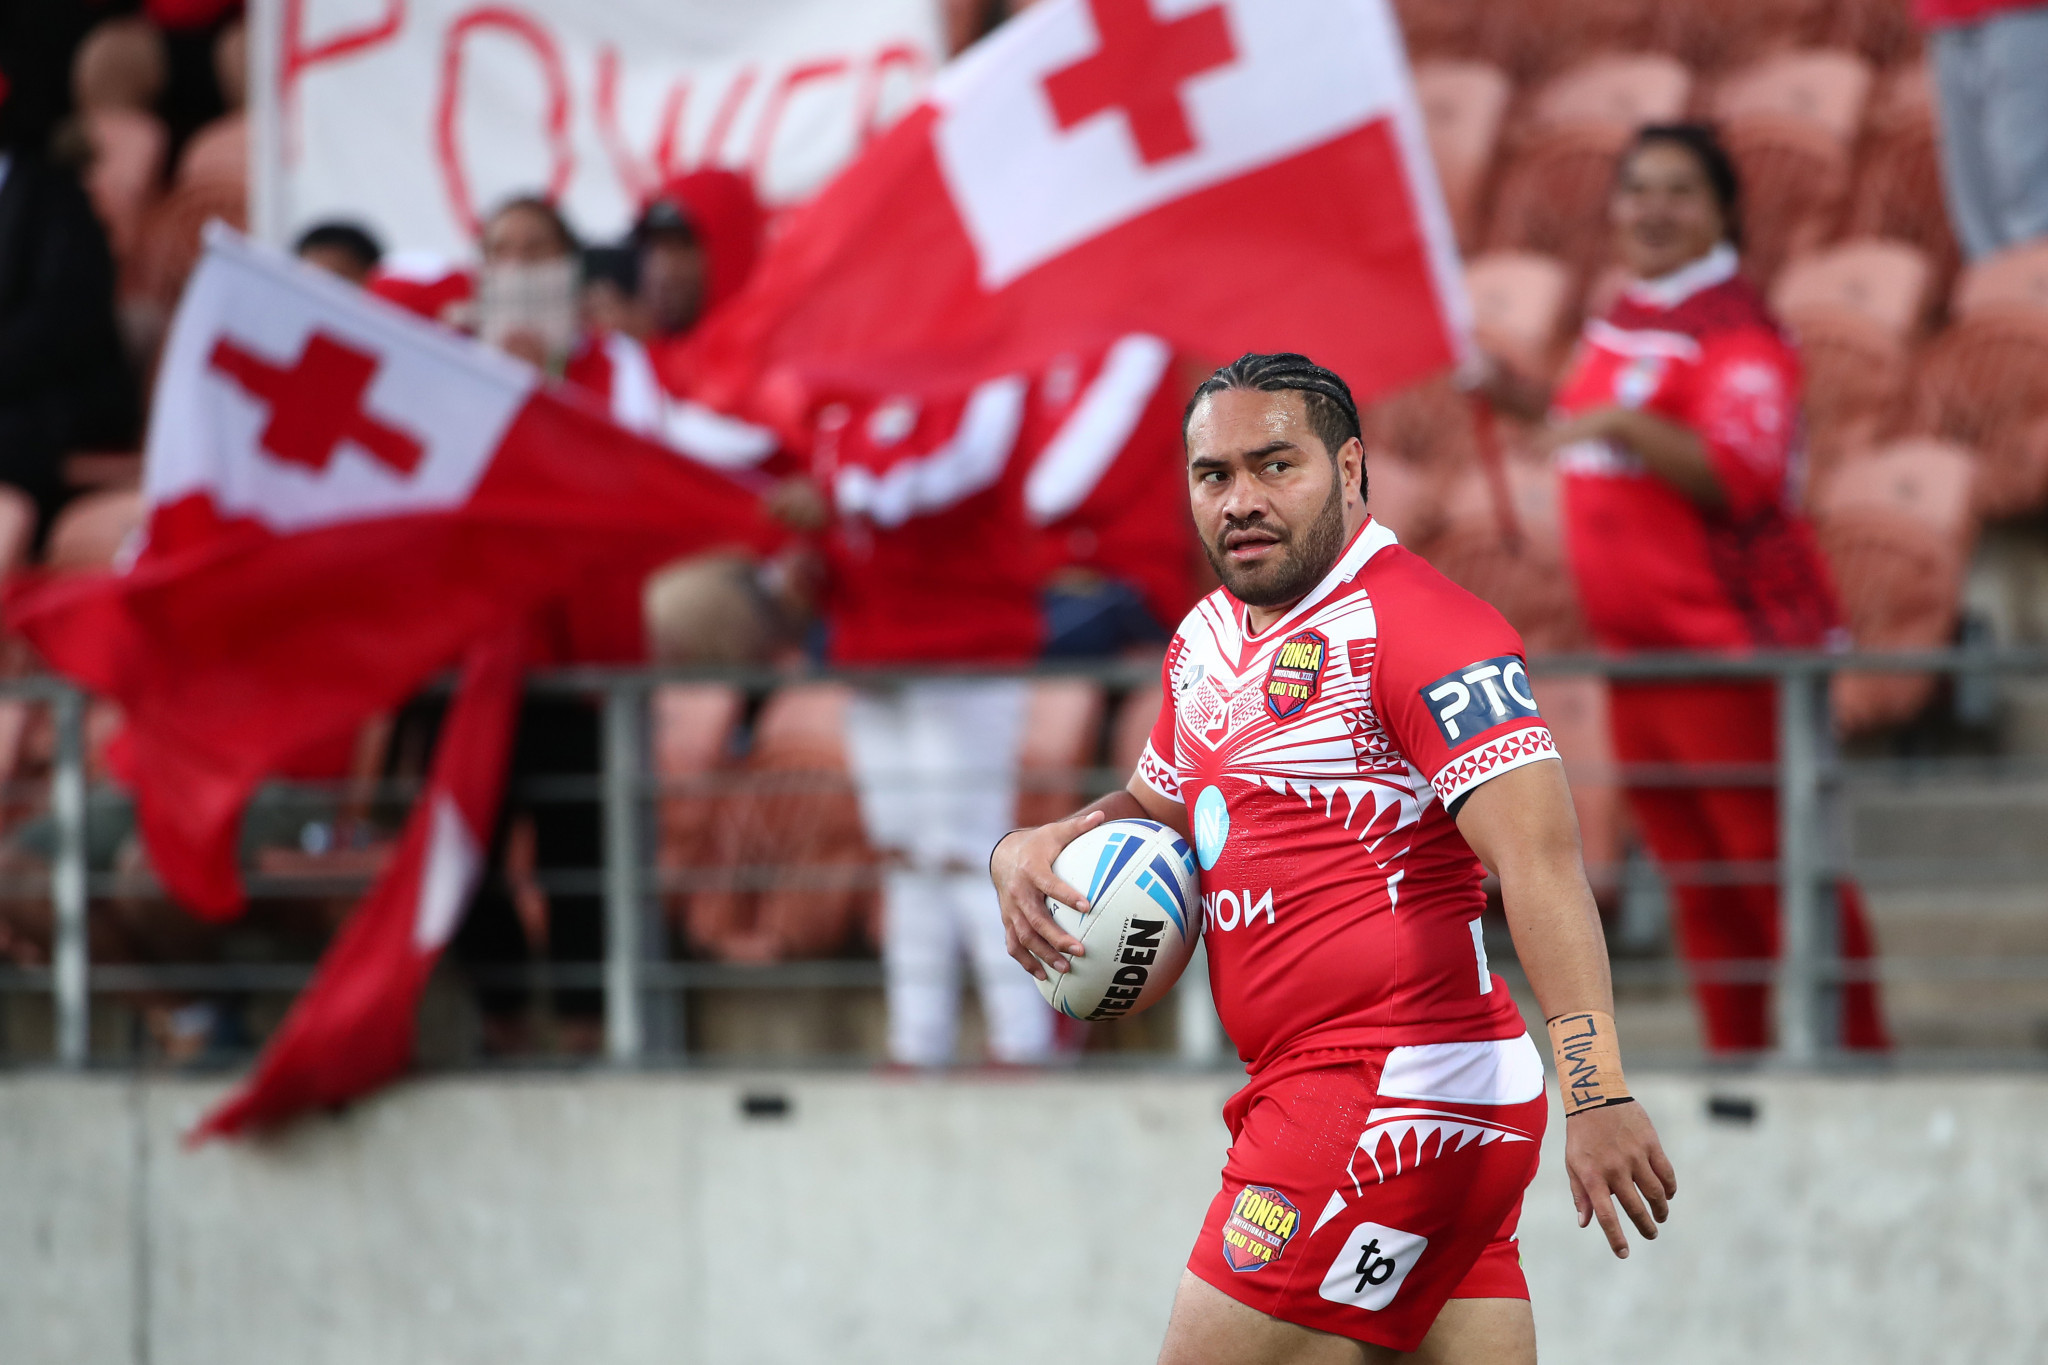 Konrad Hurrell has been included on the implementation committee to represent the Tongan national team ©Getty Images